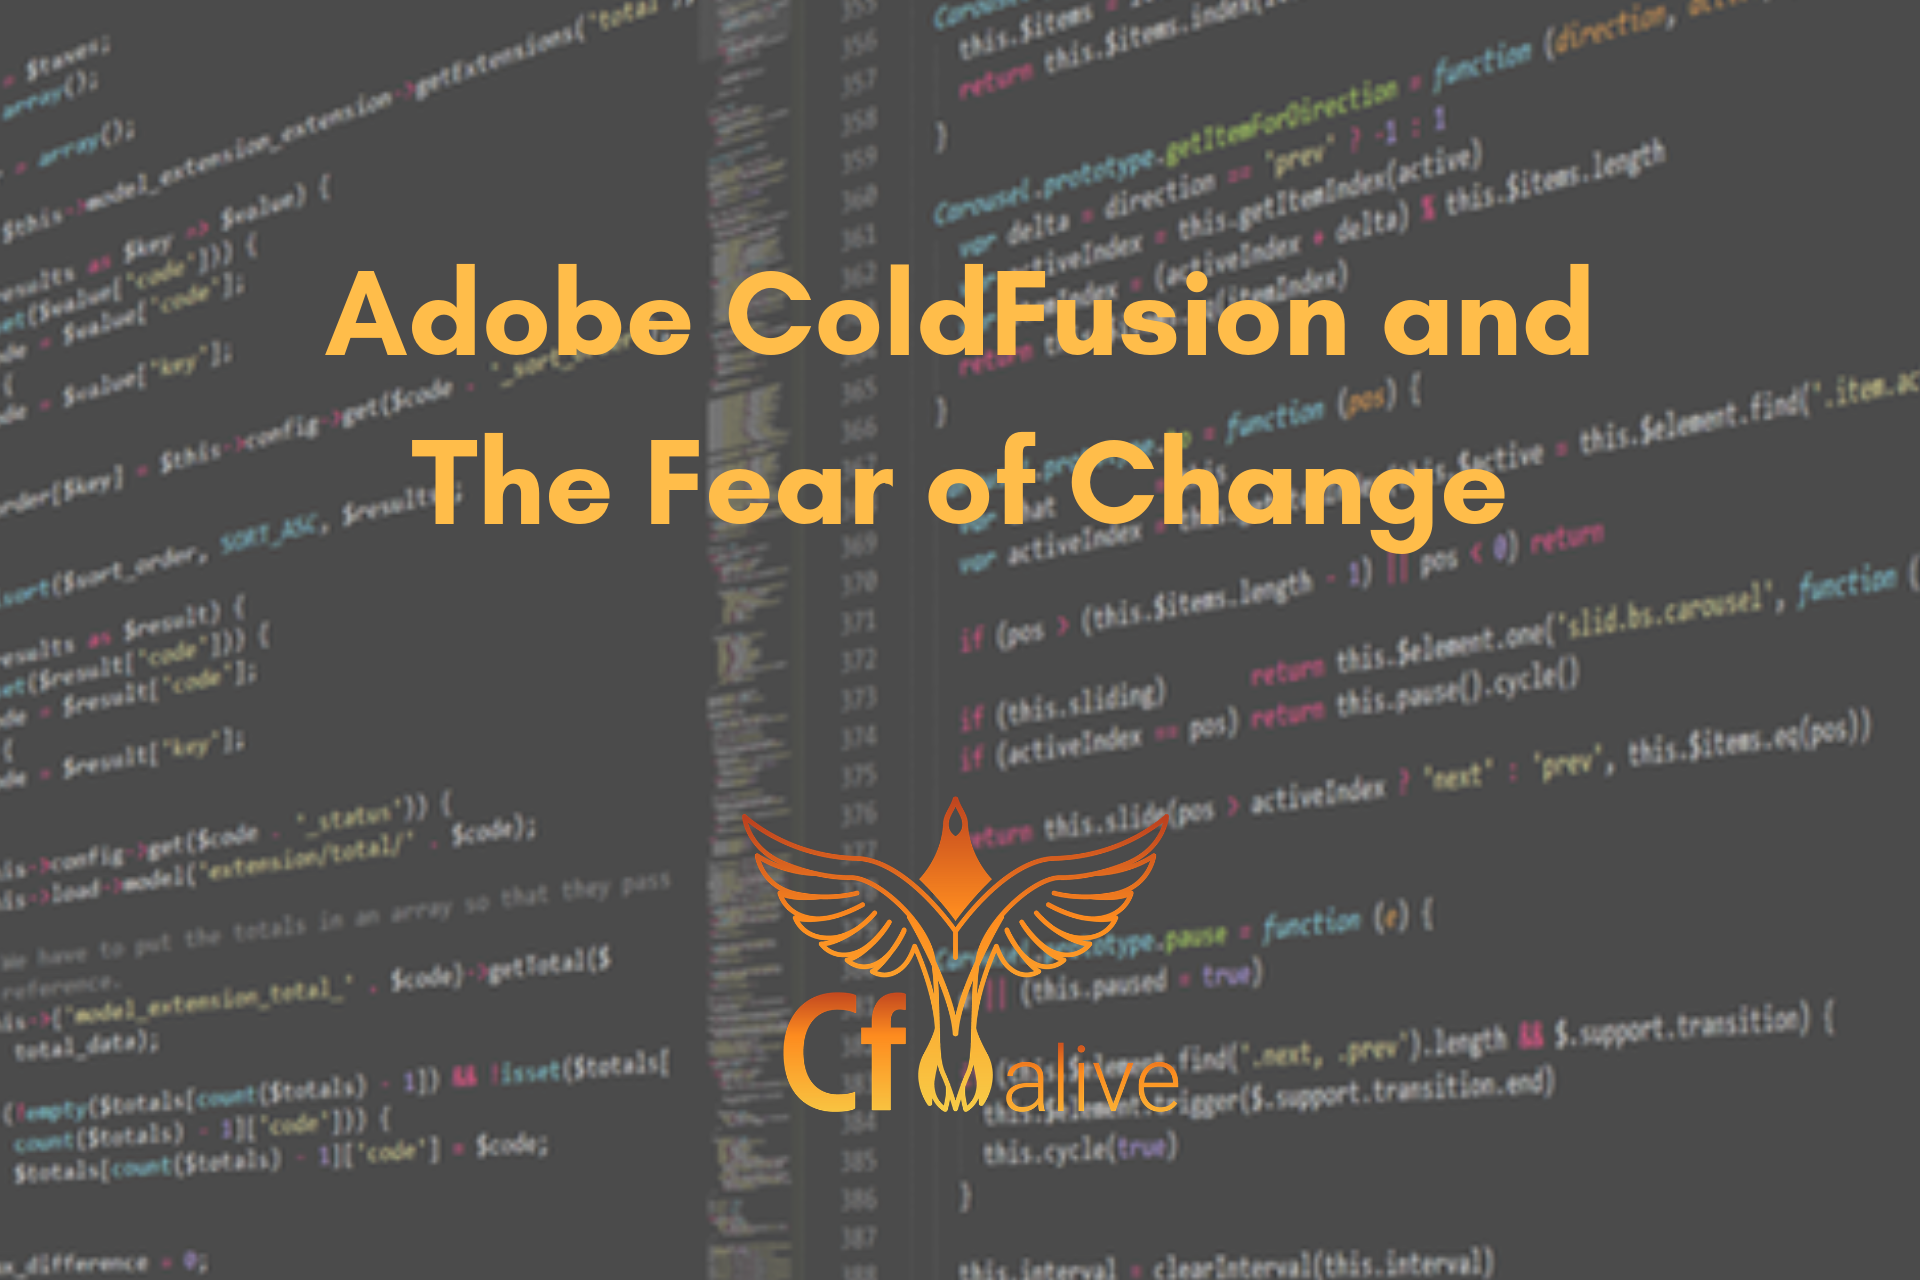 Adobe ColdFusion and the Fear of Change